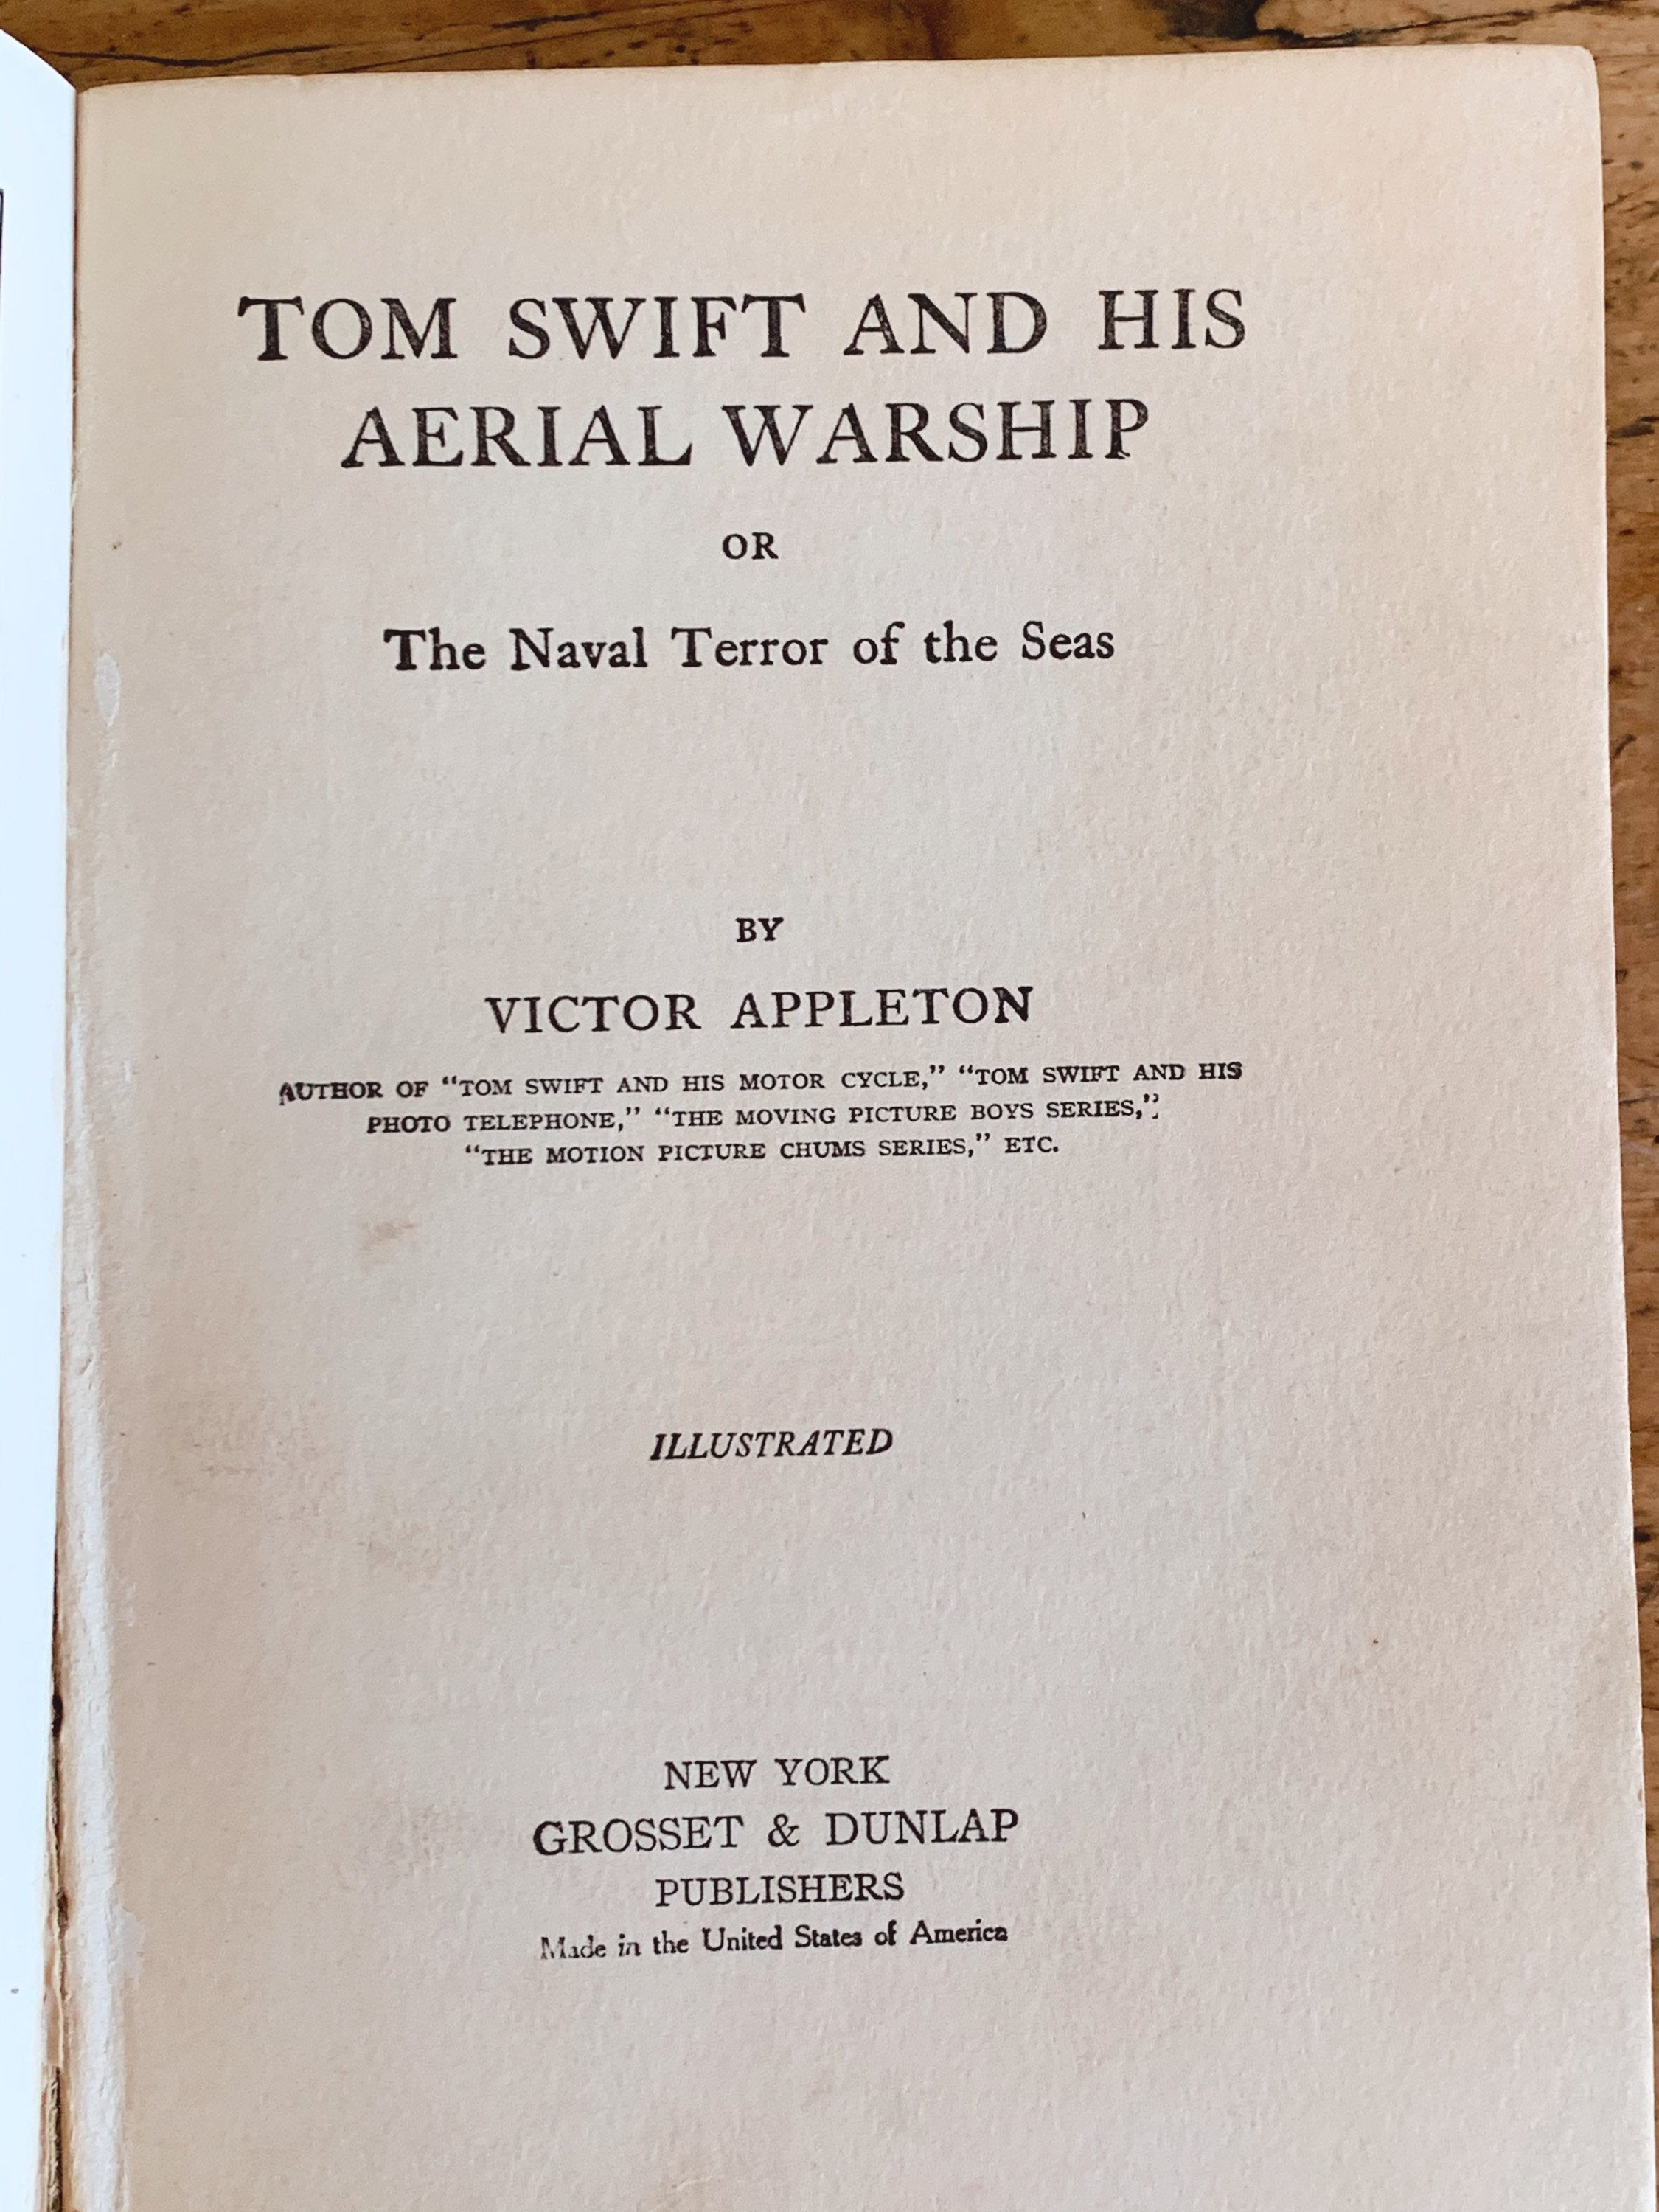 Antique Book - Tom Swift And His Aerial Warship by Victor Appleton - 1915